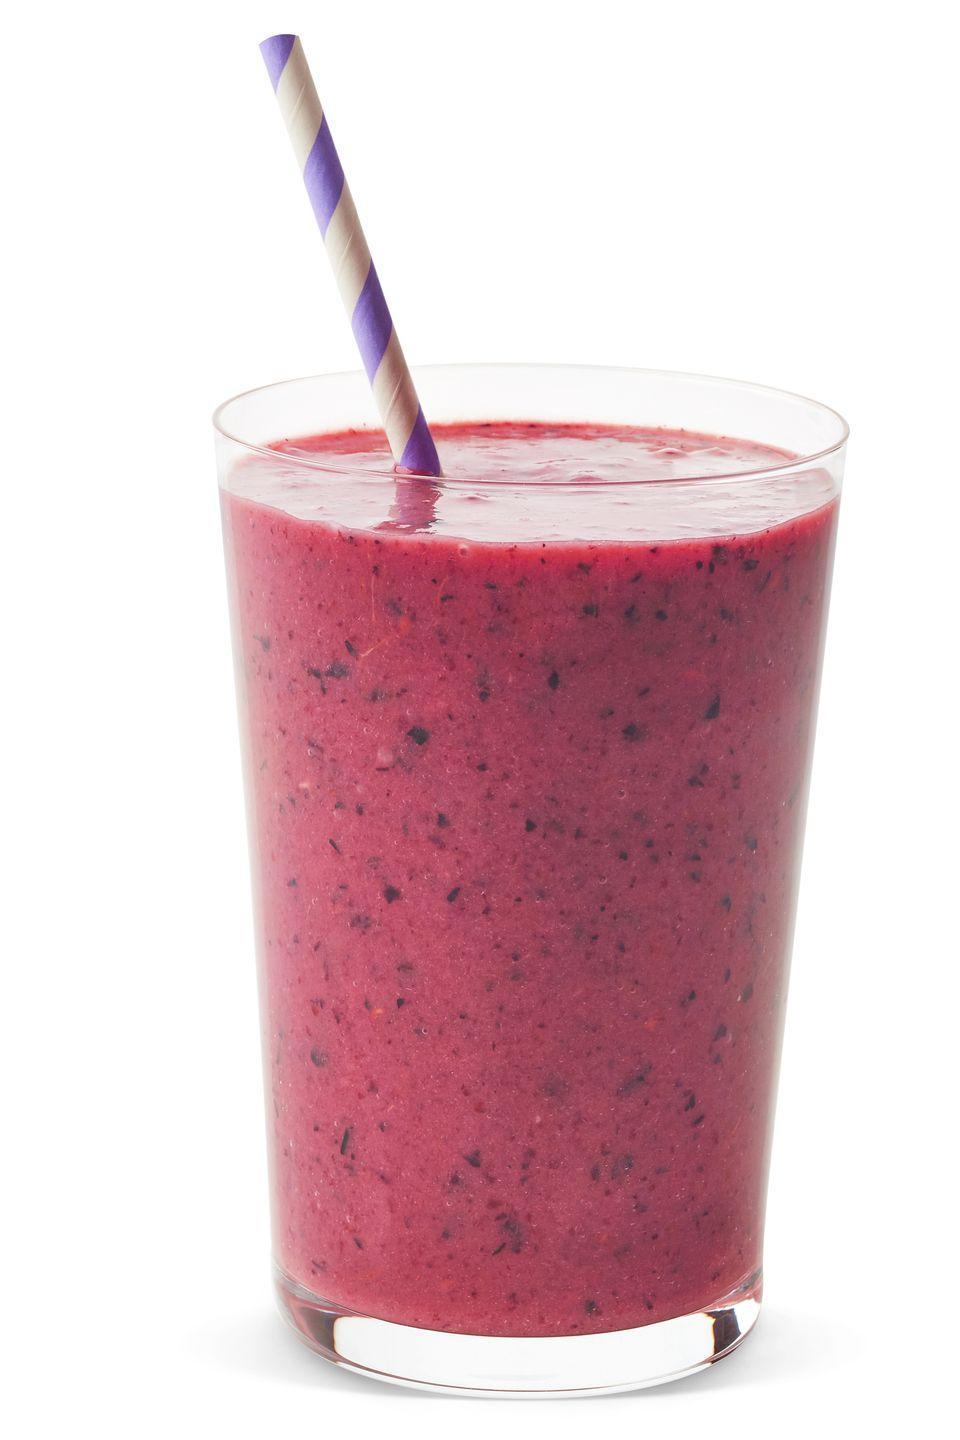 "<p>Joy Bauer, R.D.N and nutrition expert for Woman's Day, can't get enough of this smoothie. ""I'm not sure which I love most: the delicious flavor, the super load of antioxidants, or the stunning color."" The recipe makes two, so enjoy both yourself or share one with a loved one. </p><p><strong>Ingredients</strong>: 1/2 cup almond milk, 1/2 cup plain low-fat yogurt, 1 tsp honey, 1 cup mixed frozen berries, 1 cup freshly cooked beets, 3 to 5 ice cubes. </p>"